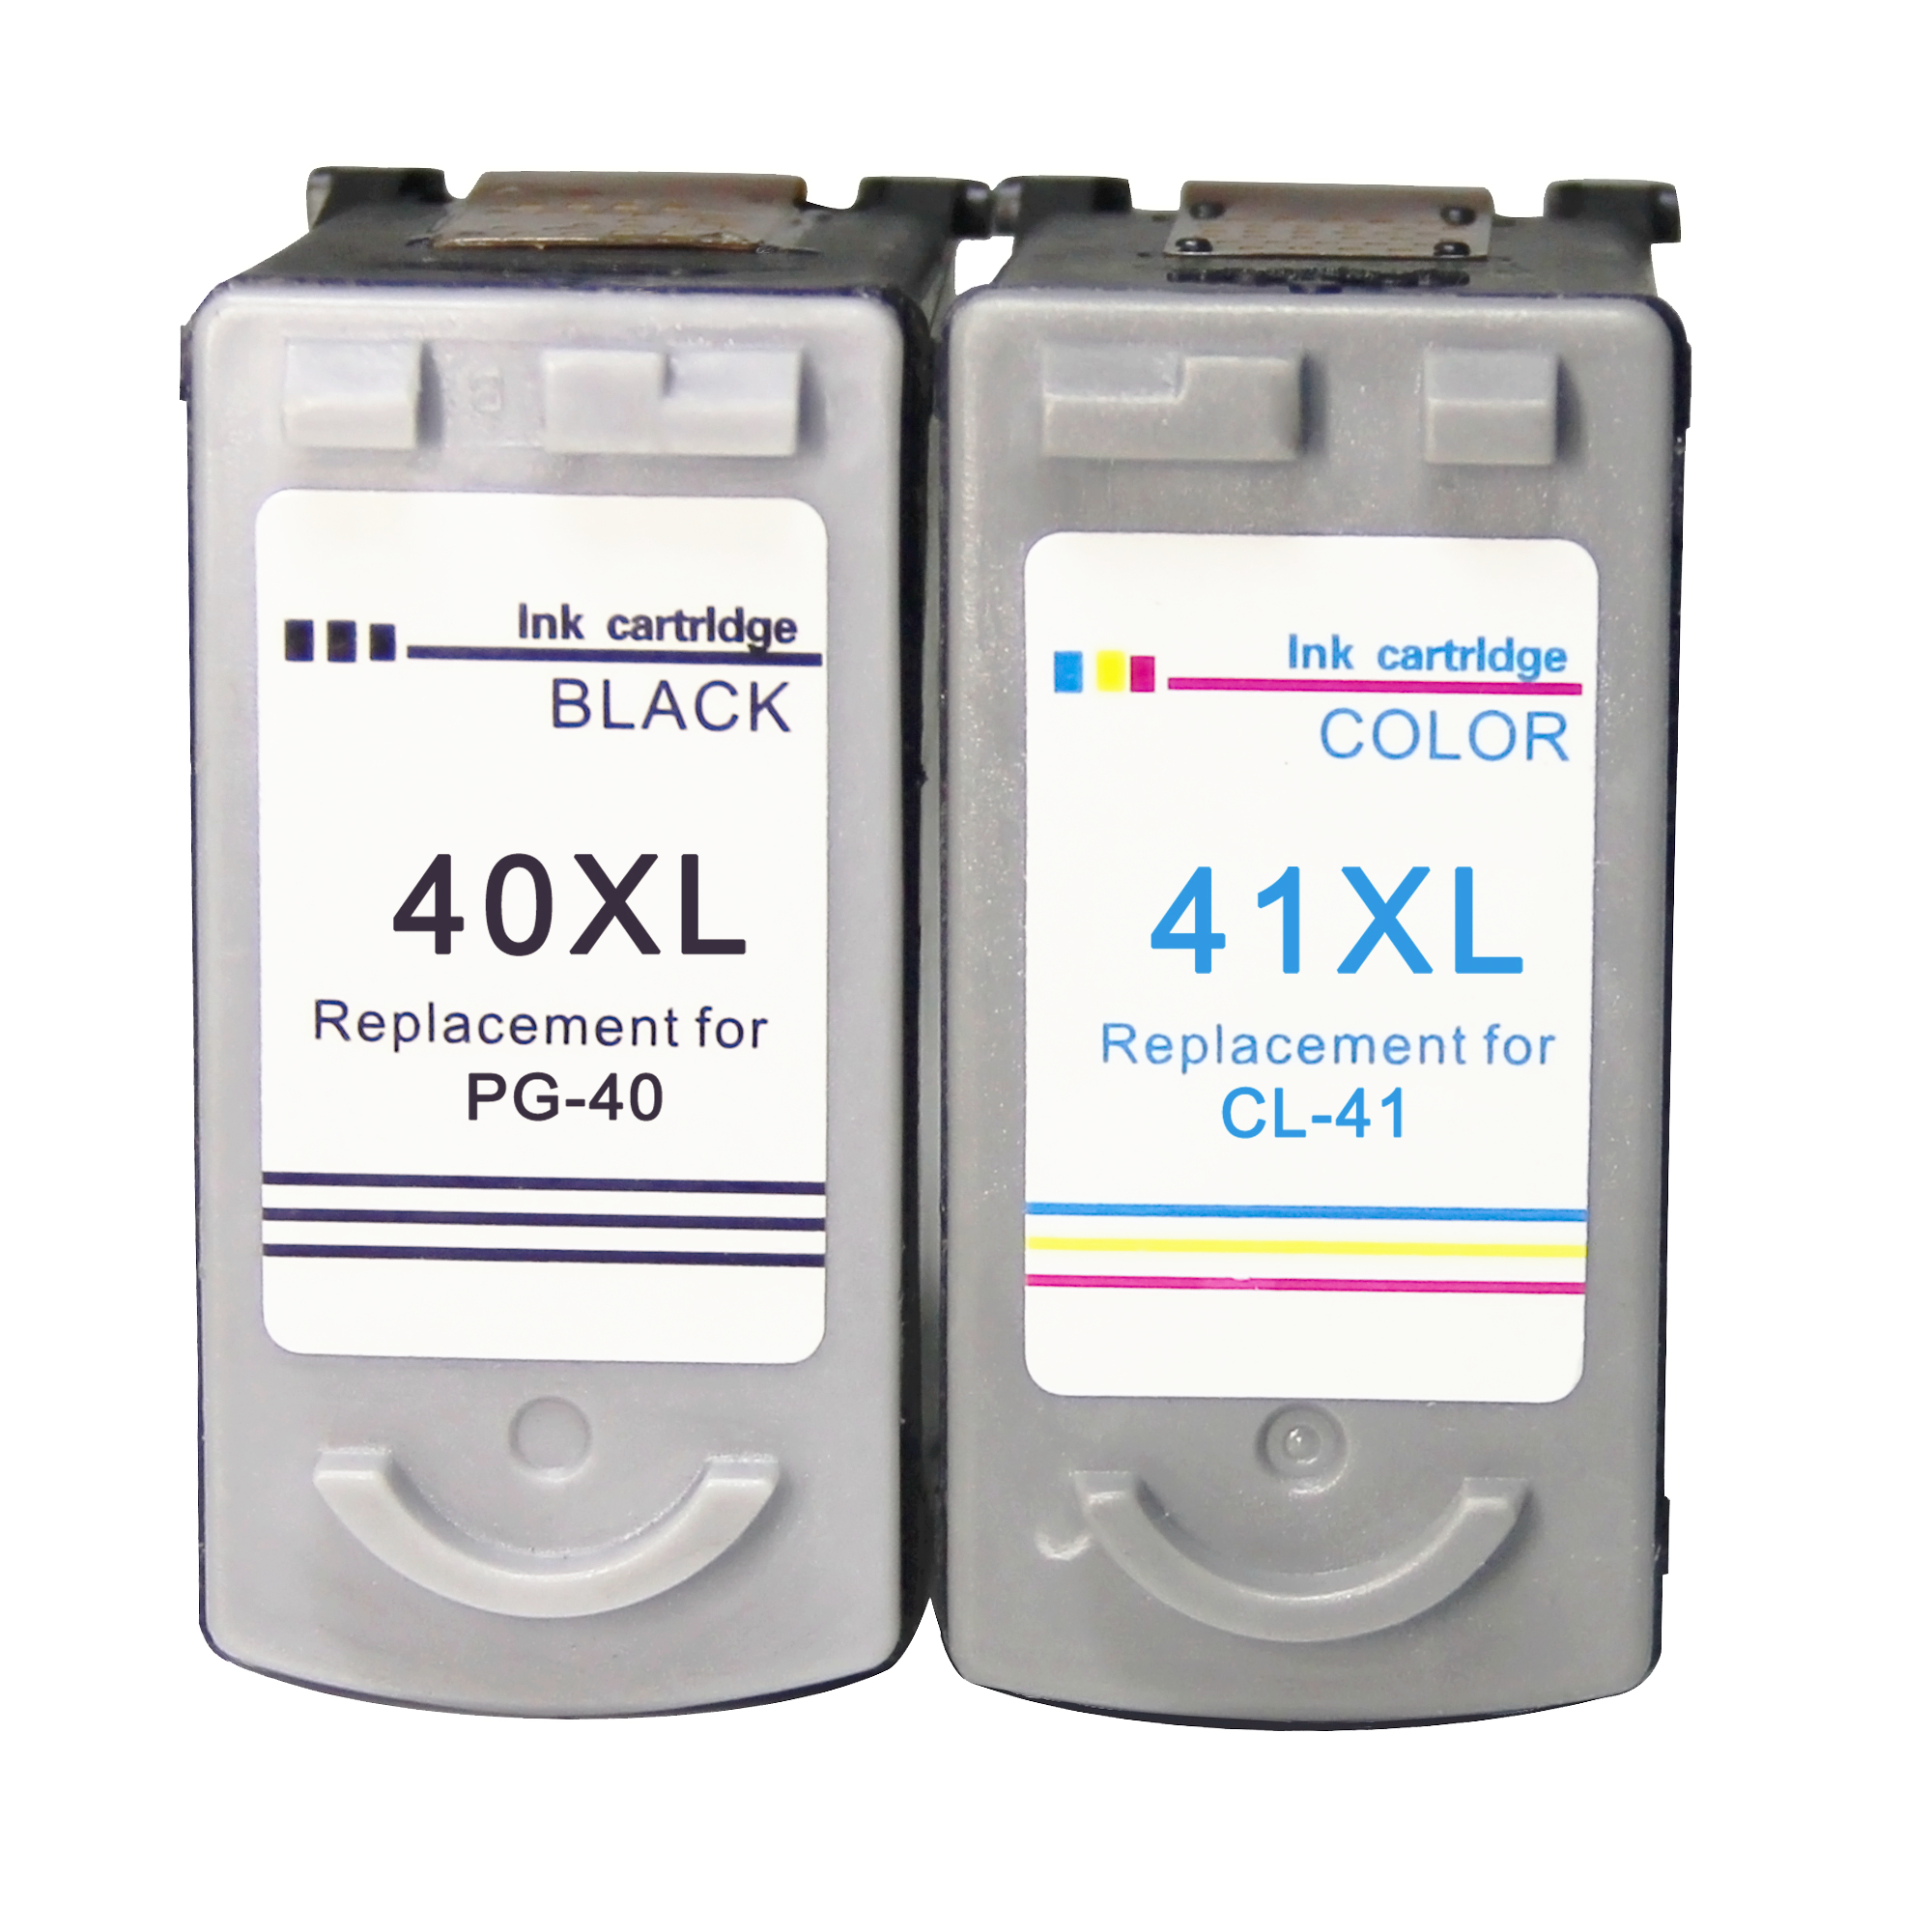 PG40 CL41 <font><b>Ink</b></font> <font><b>Cartridge</b></font> Replacement for Canon PG40 CL41 PG-<font><b>40</b></font> CL-41 iP1600 IP1700 IP1800 MP140 MP450 MP470 MX300 printer image